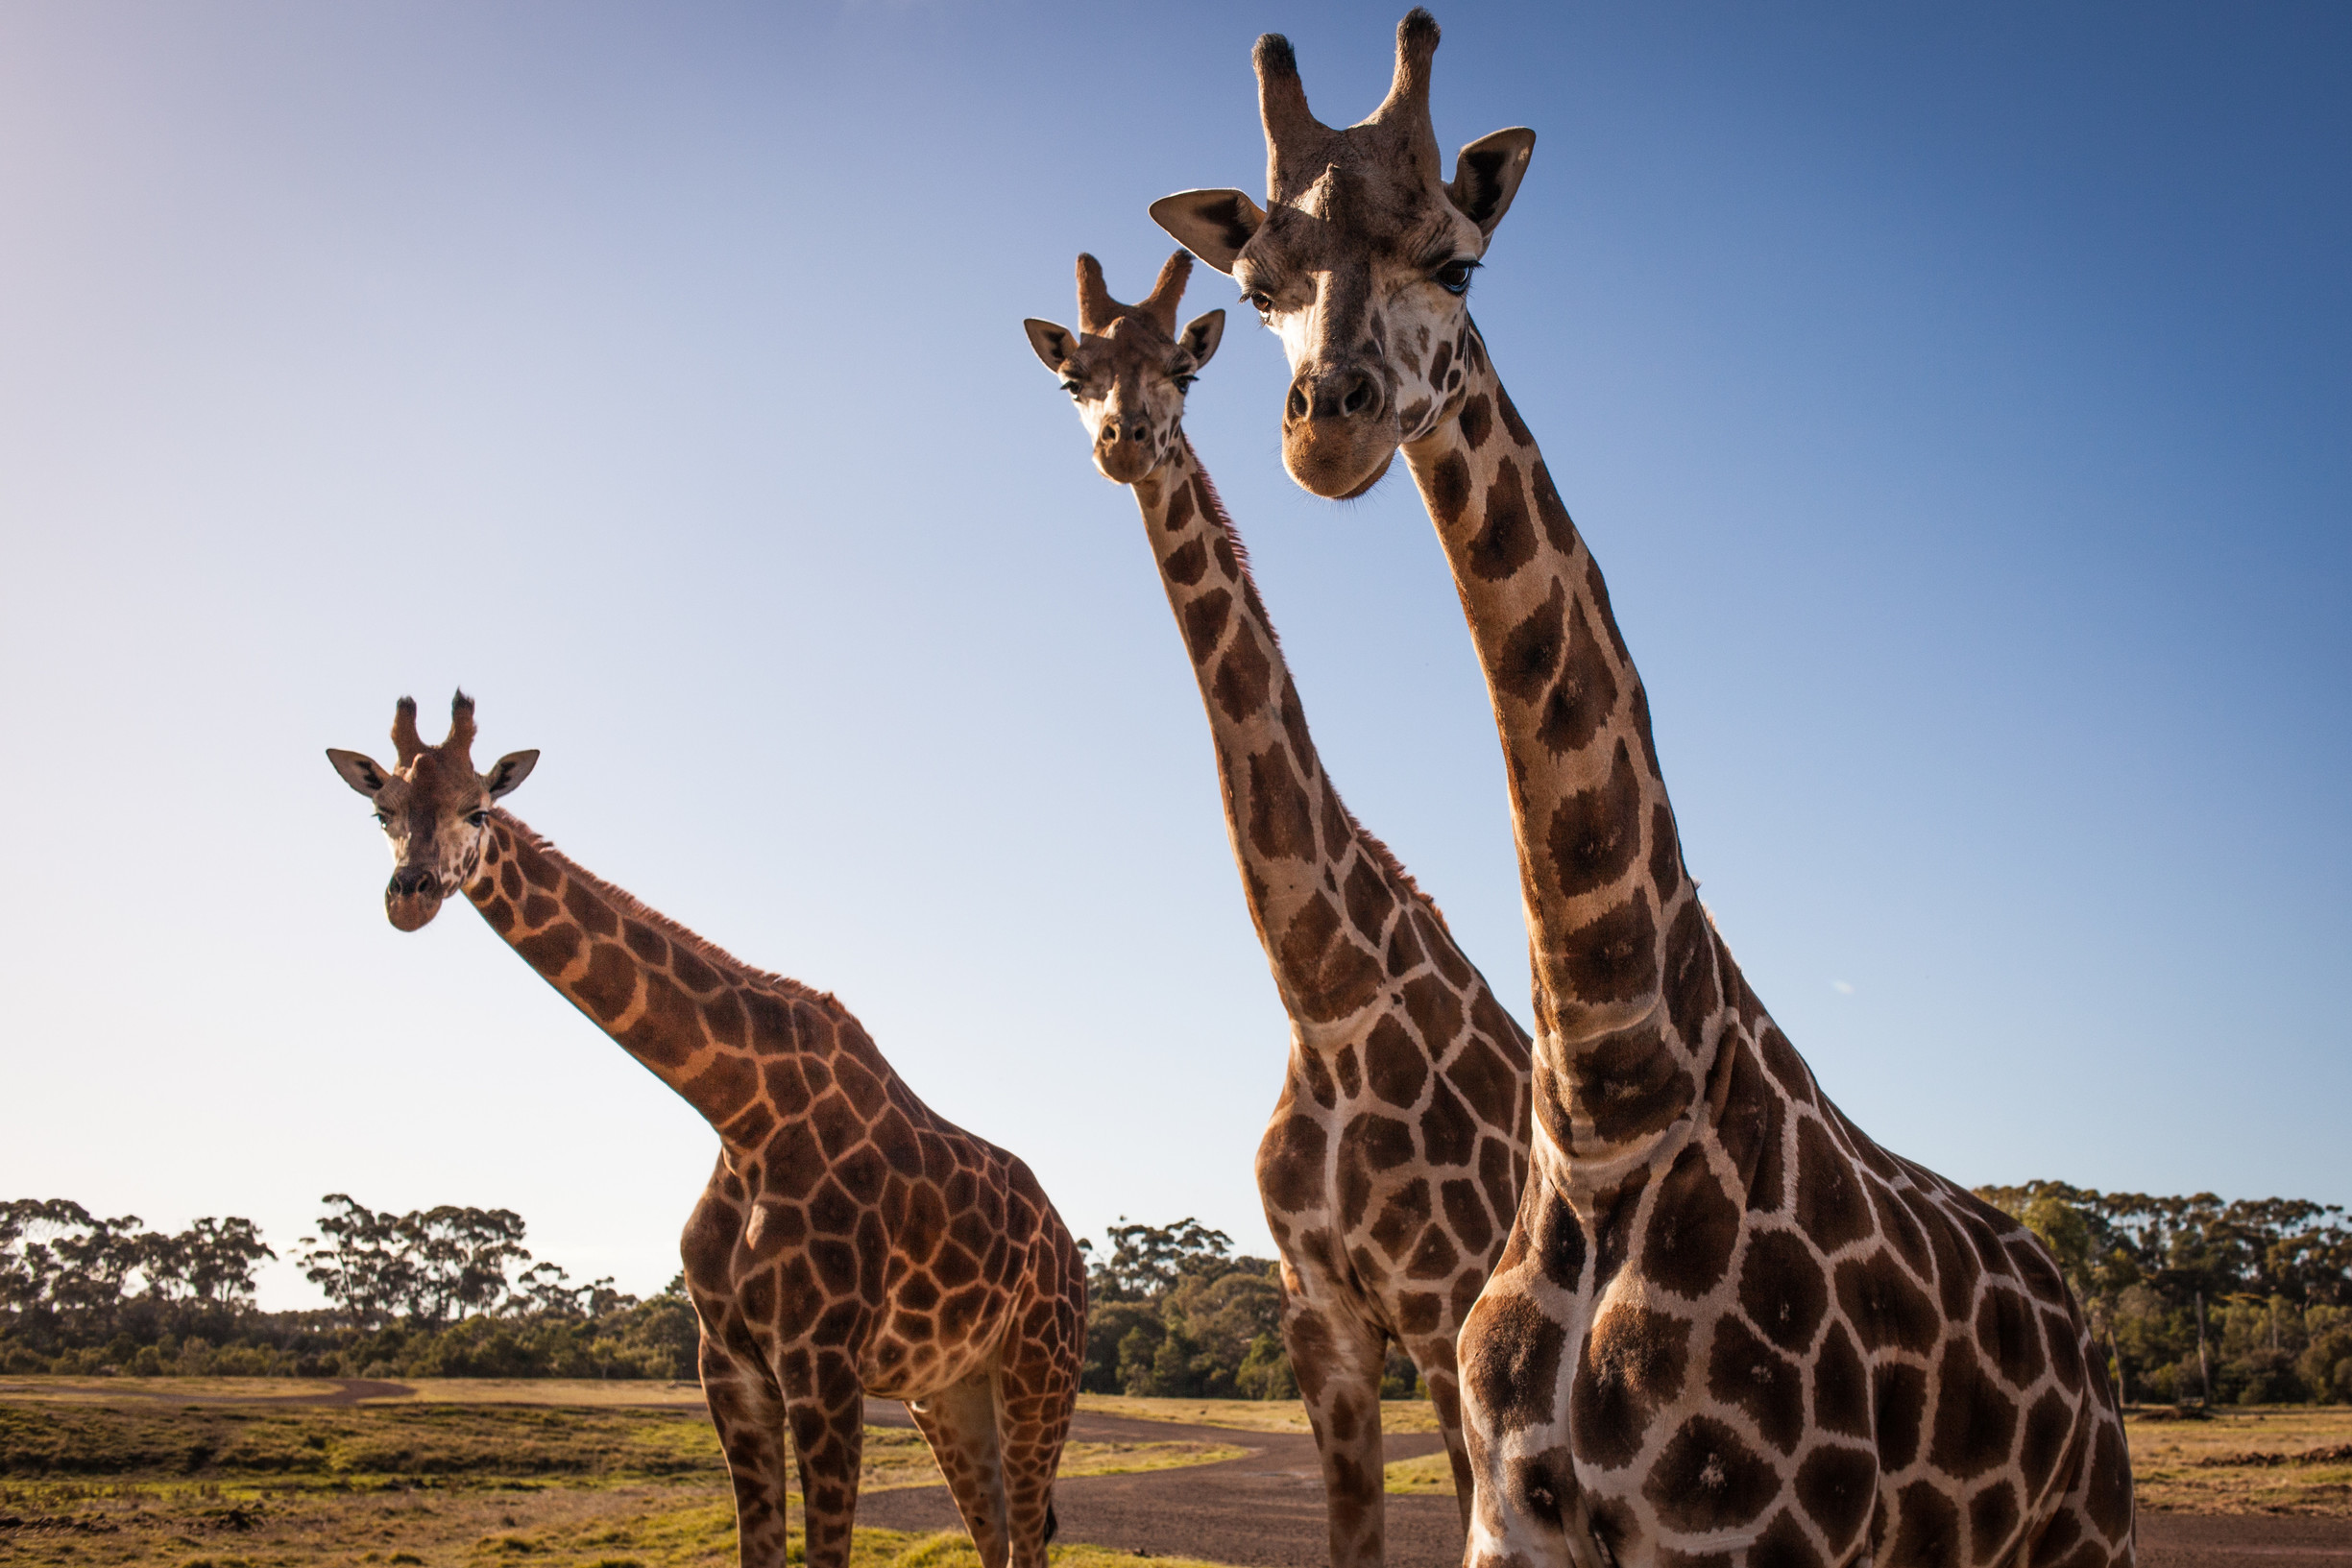 Melbourne Zoo, Werribee Zoo and Healesville Sanctuary will reopen on June 1